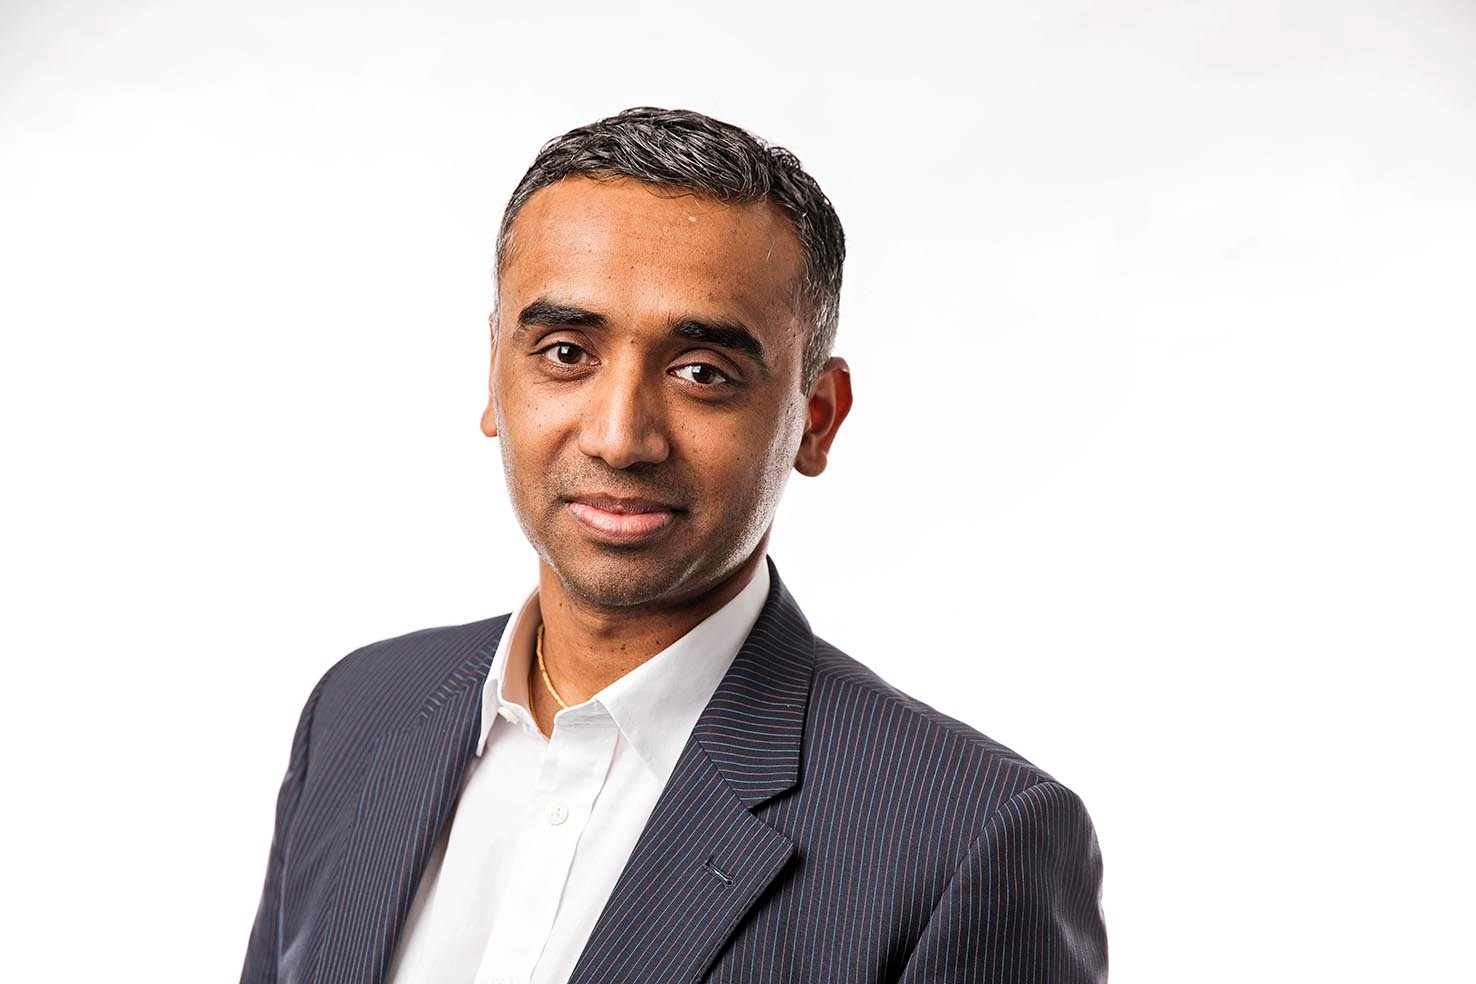 Spotify hires Rakesh Patel to head up company's sales force in the